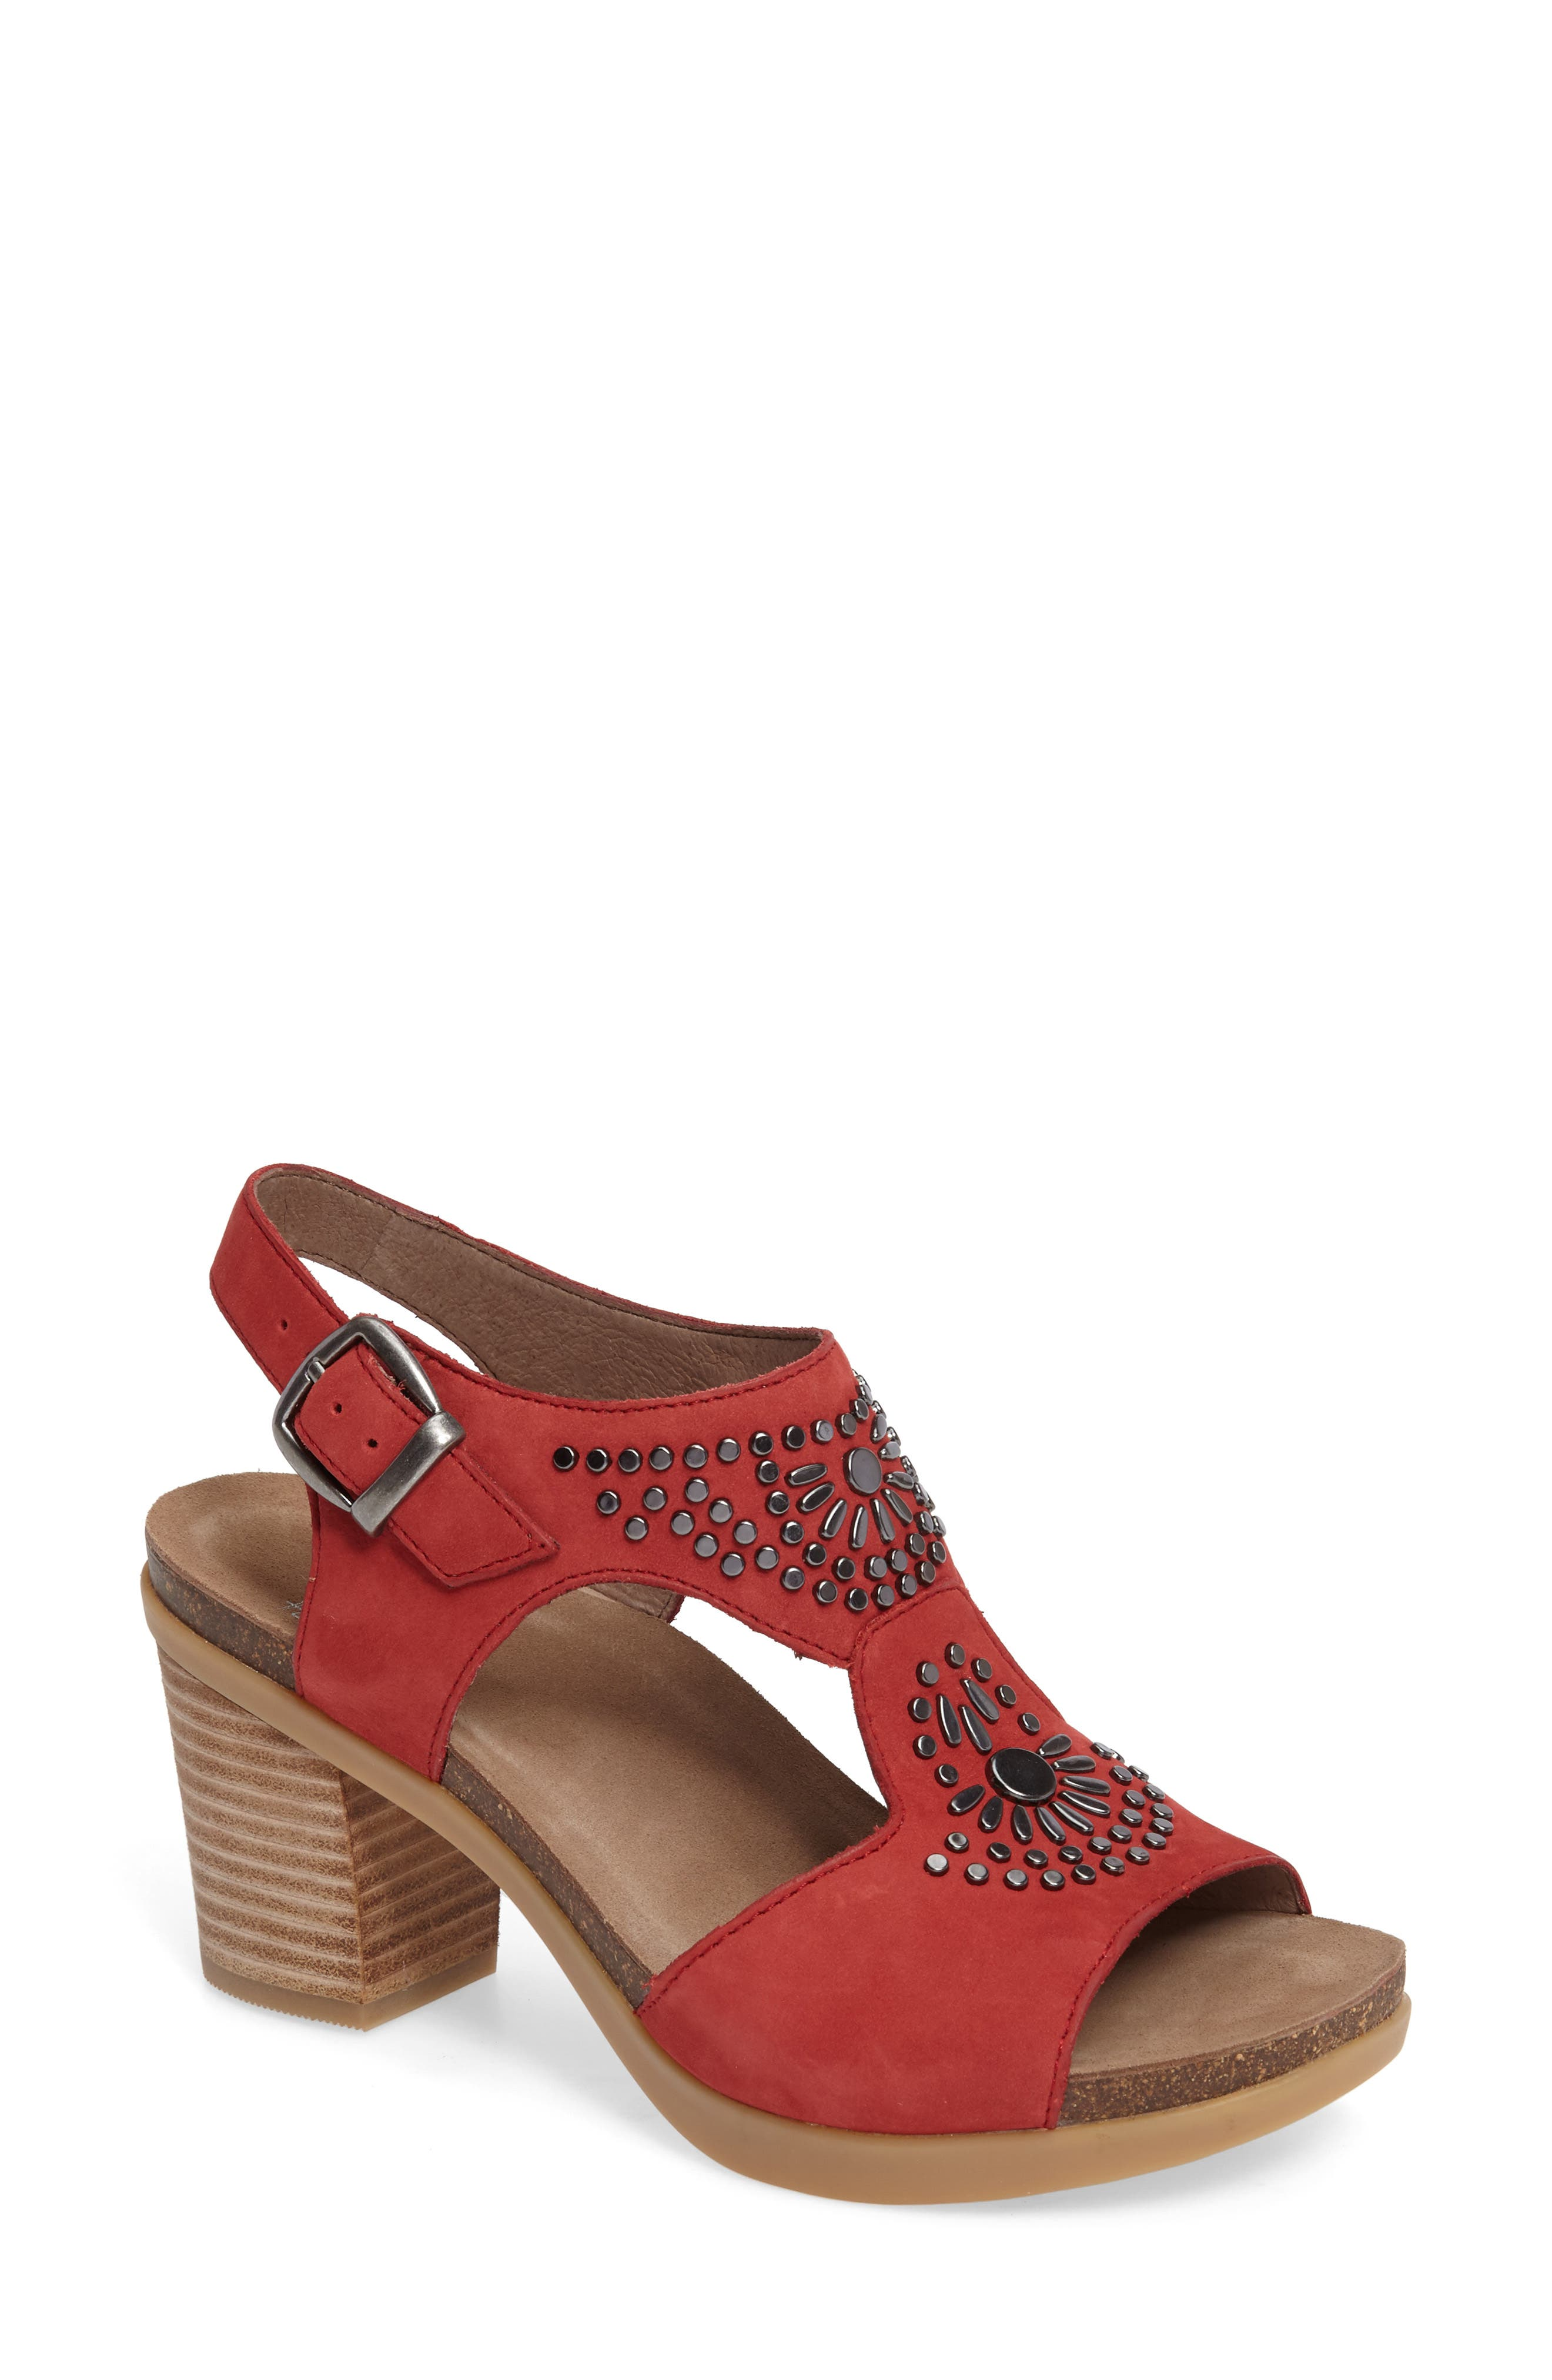 Deandra Studded Sandal,                         Main,                         color, Red Nubuck Leather